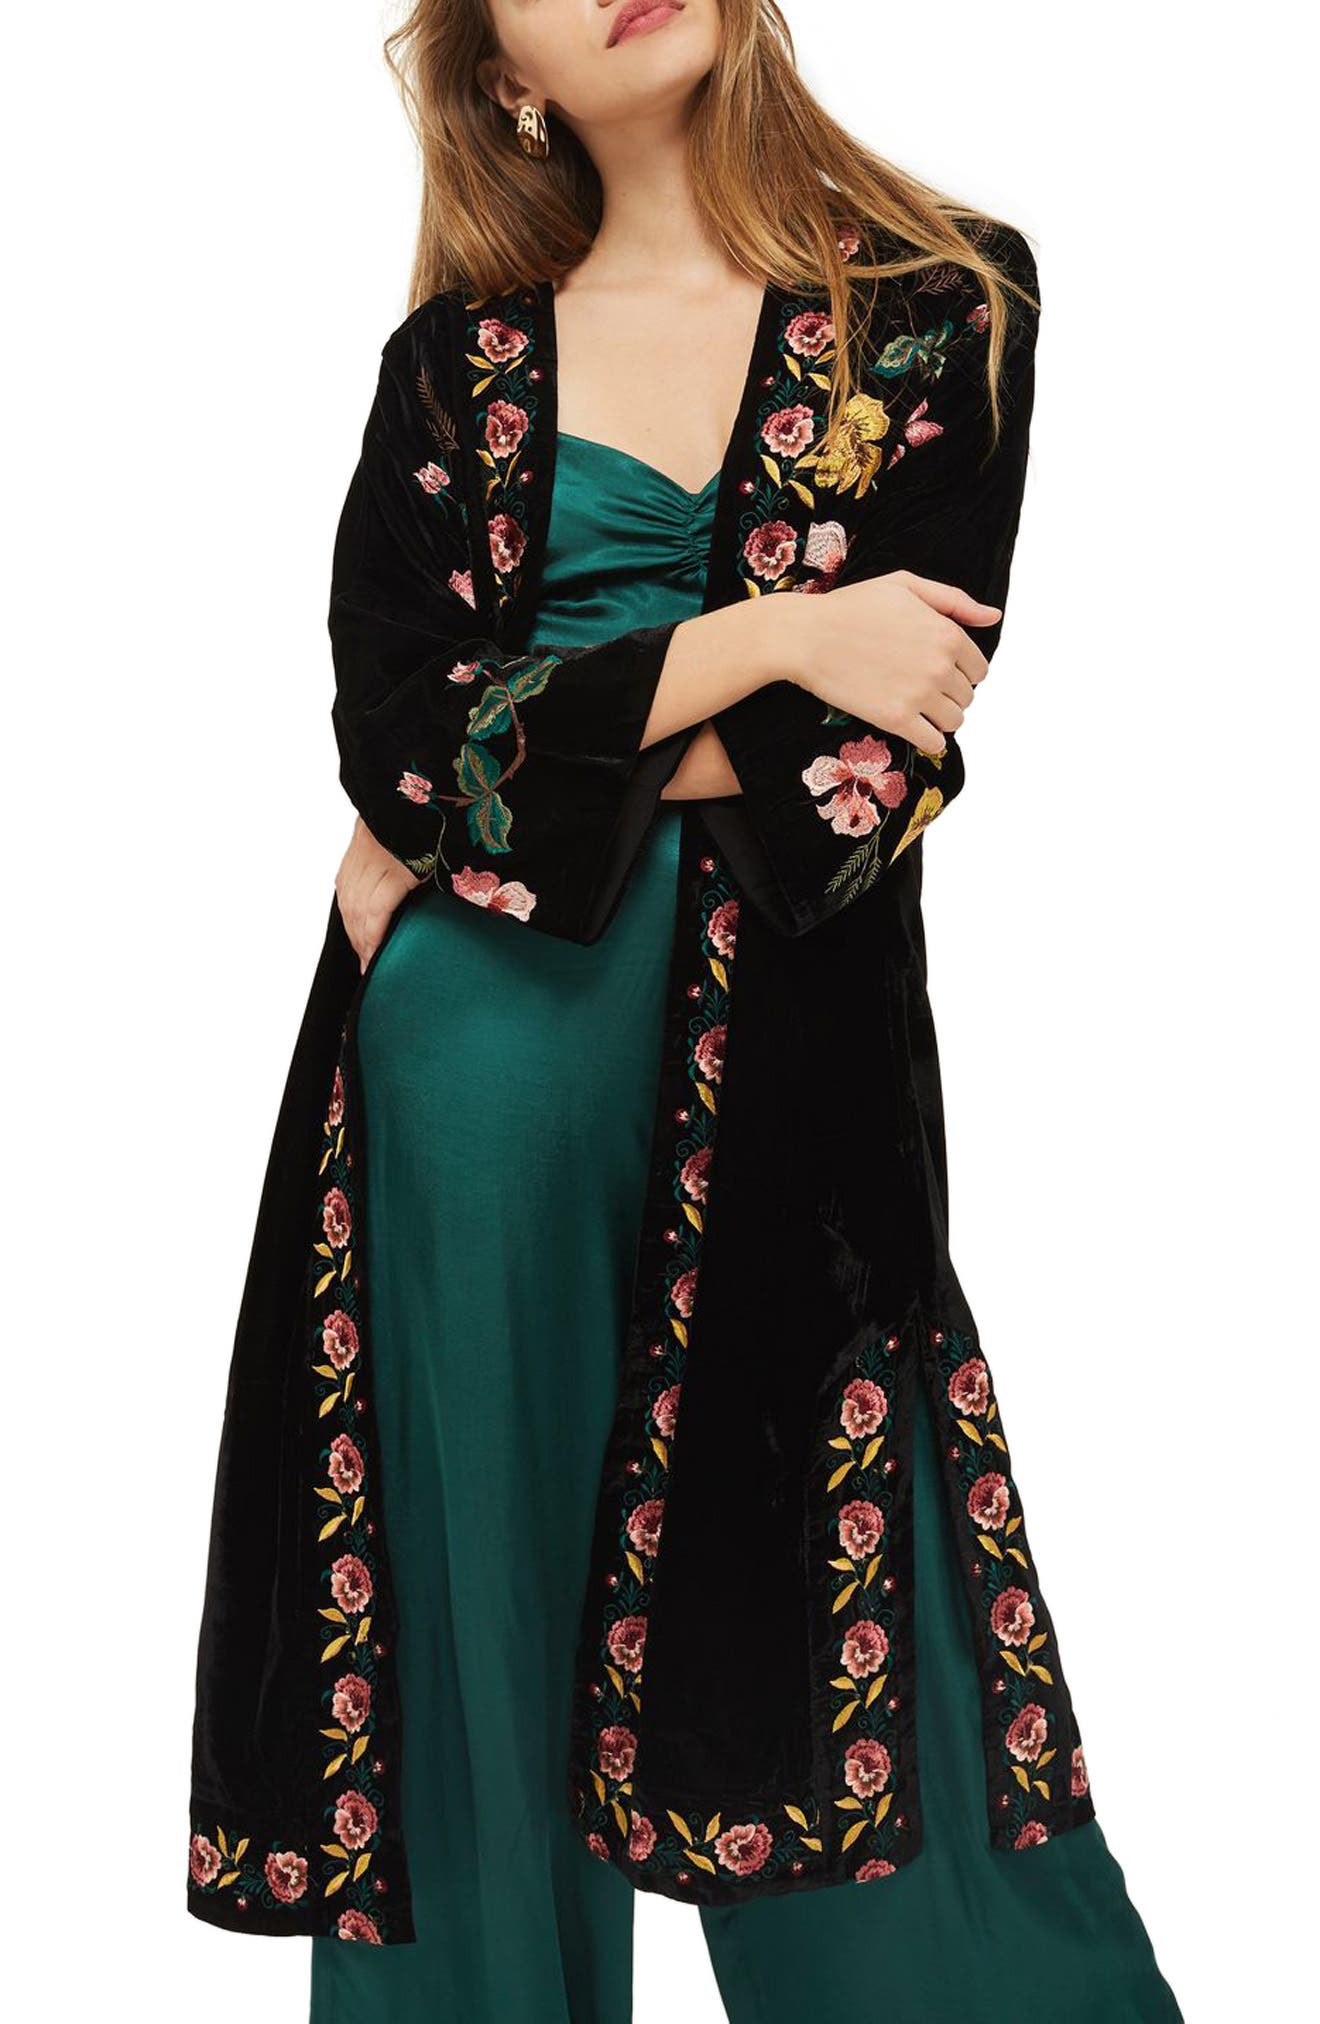 Floral Embroidered Velvet Kimono,                             Main thumbnail 1, color,                             Black Multi